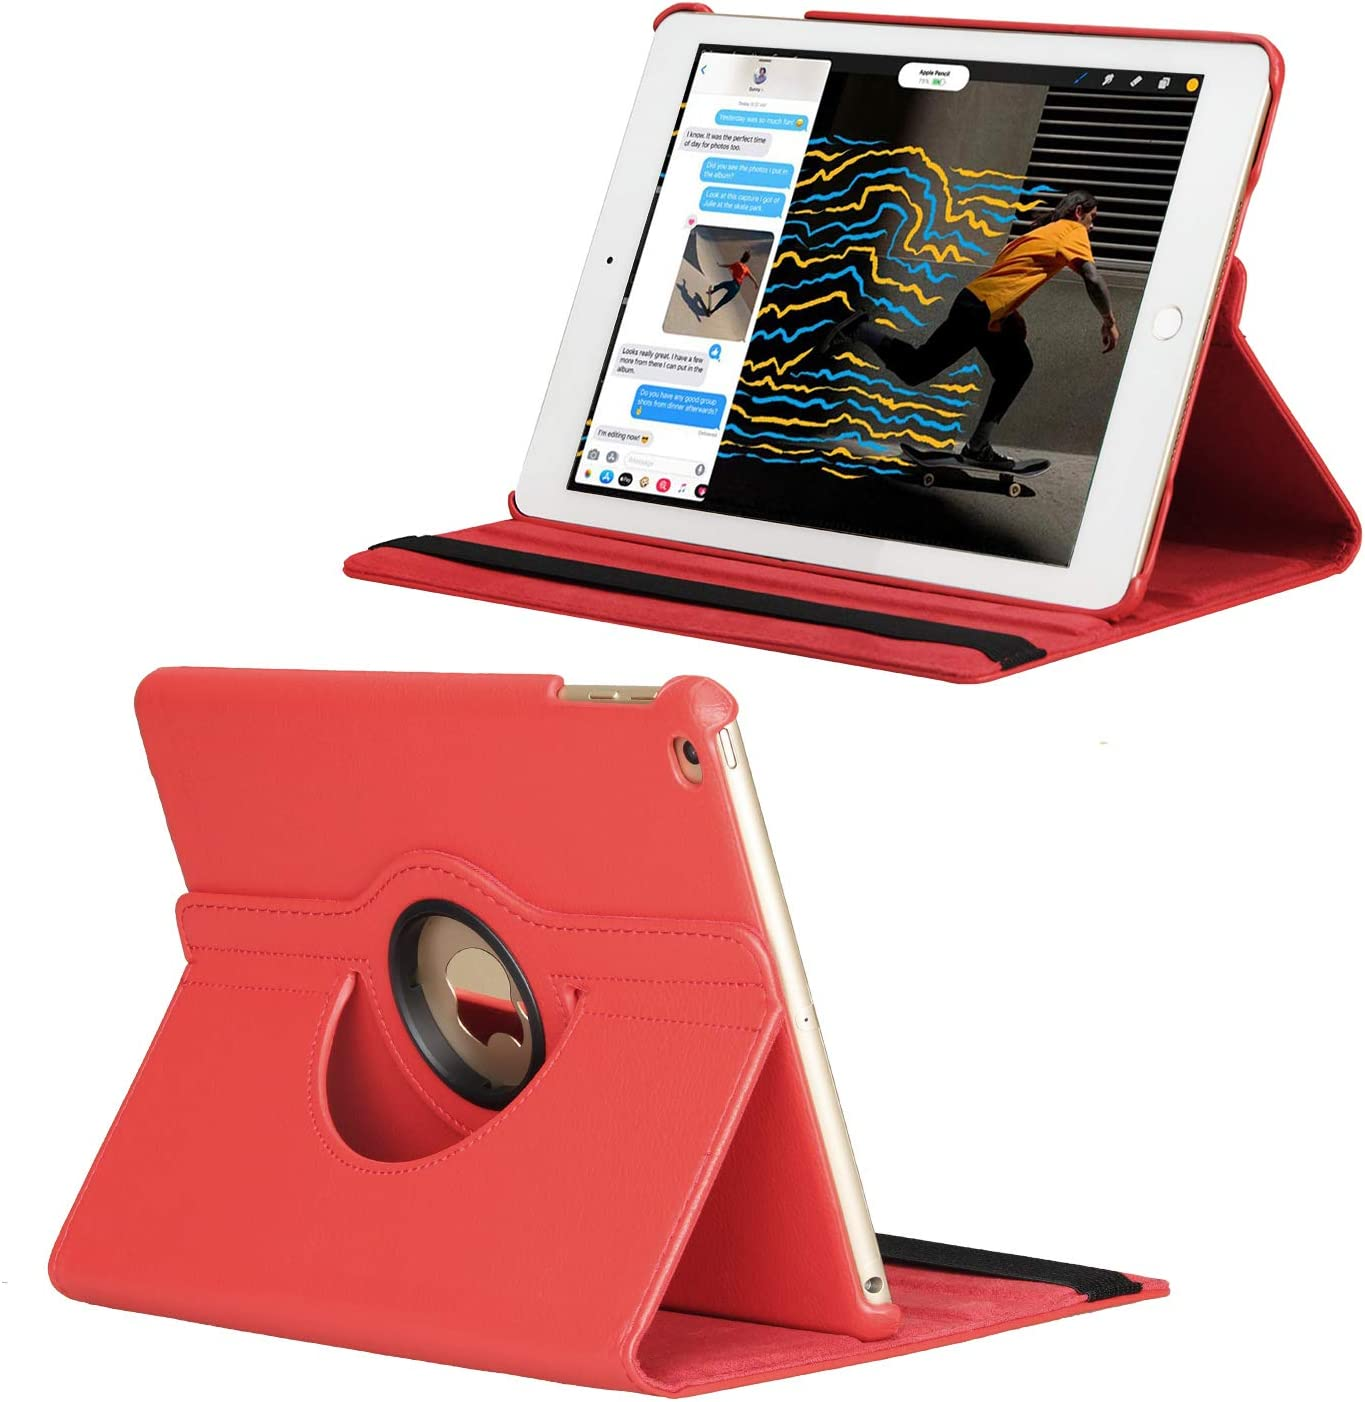 Zerobox Apple iPad 2018 9.7/2017 9.7/iPad Air 2/iPad Air 9.7 inch Case,360 Degrees Rotating Multi Angles Screen Protective Stand with Auto Sleep/Wake Smart Cover (Red) Red